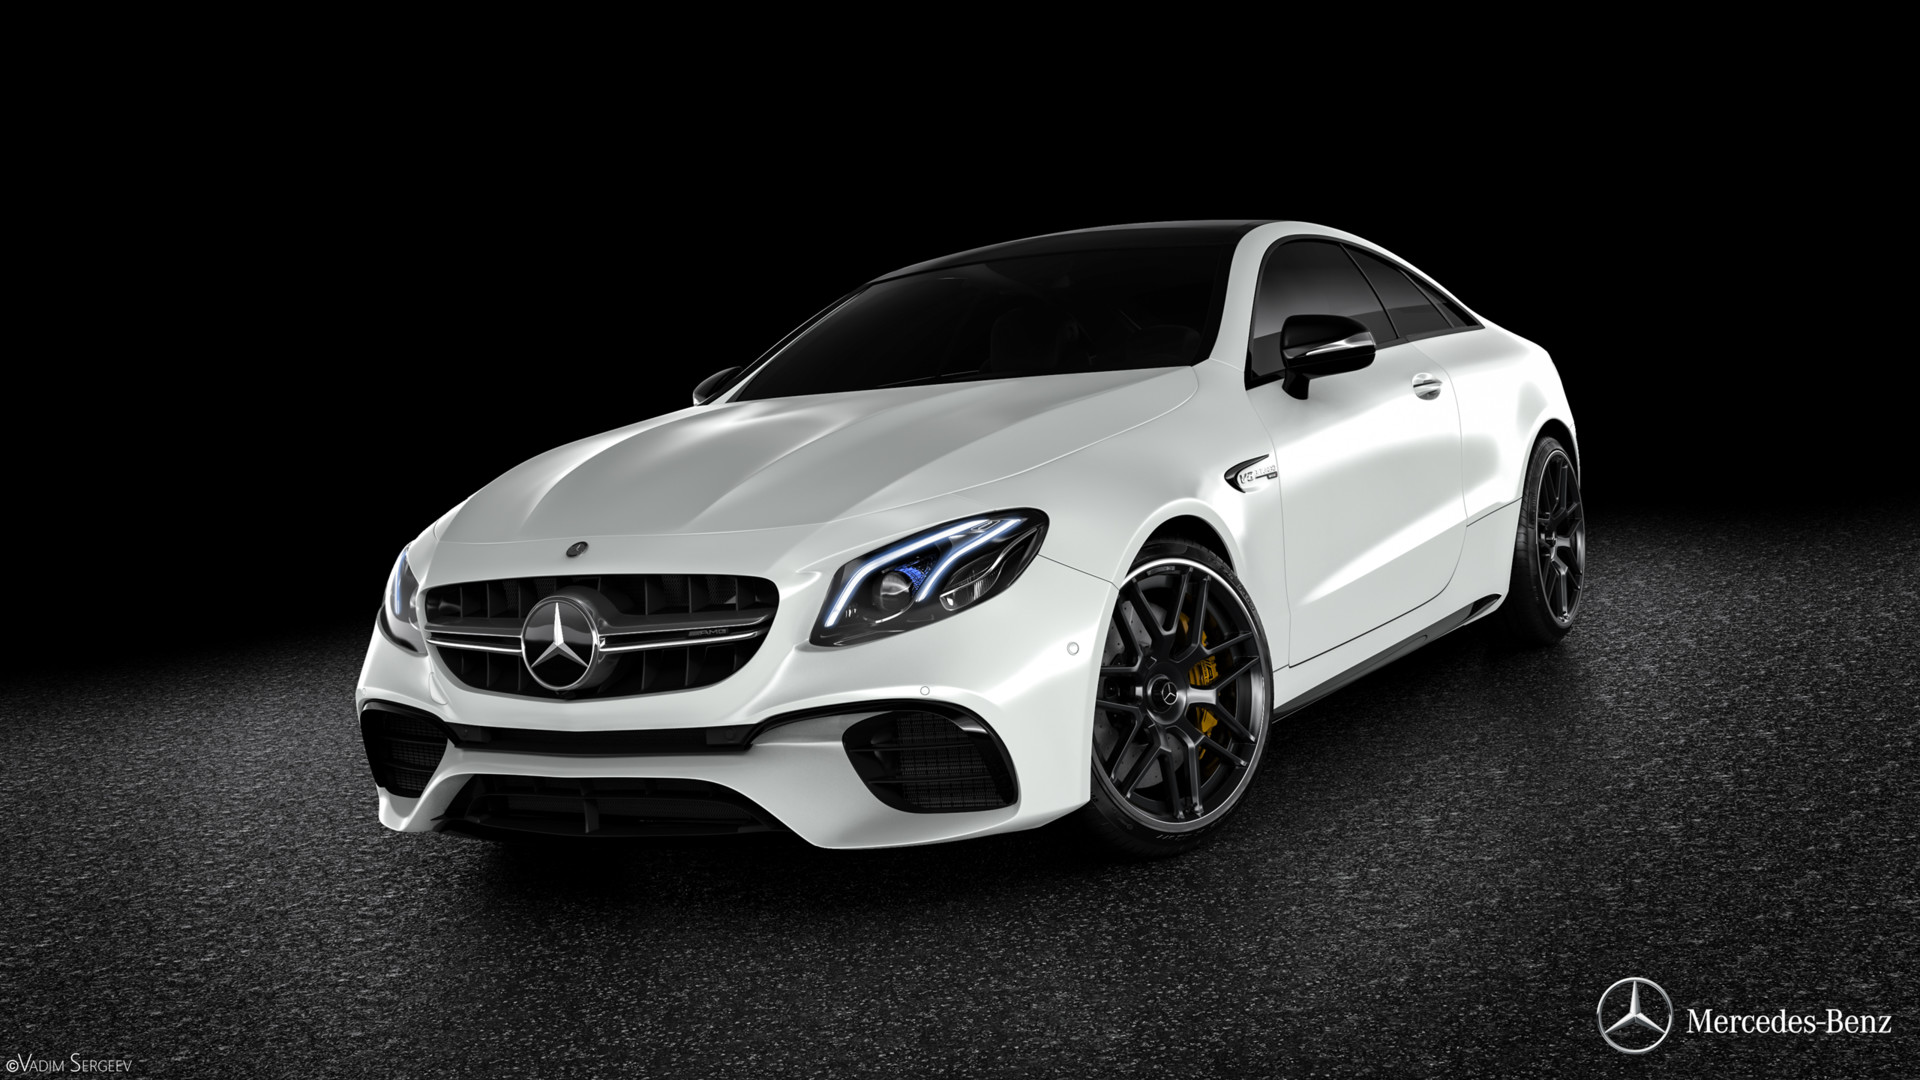 Incredible mercedes amg e63 s coupe renderings show why it for Mercedes benz e63 s amg